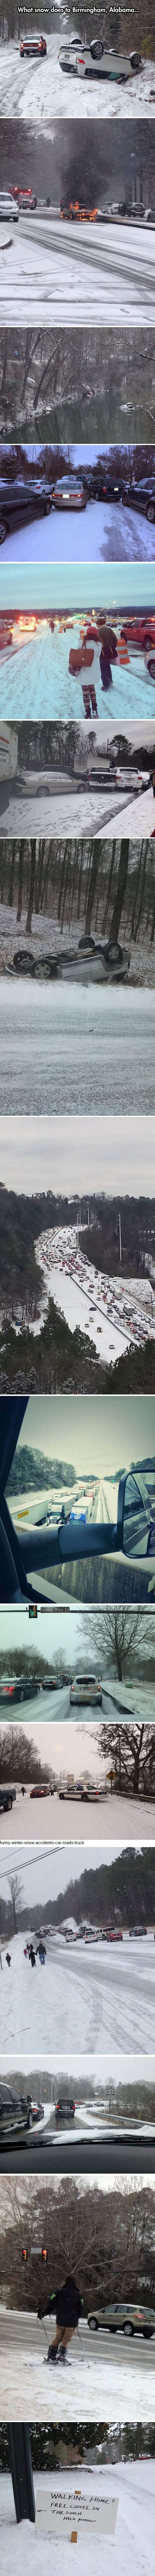 What snow does to Birmingham, Alabama… There should be a sequel to this... What snow does in Minnesota. And have everybody driving normally in 2 ft of snow.